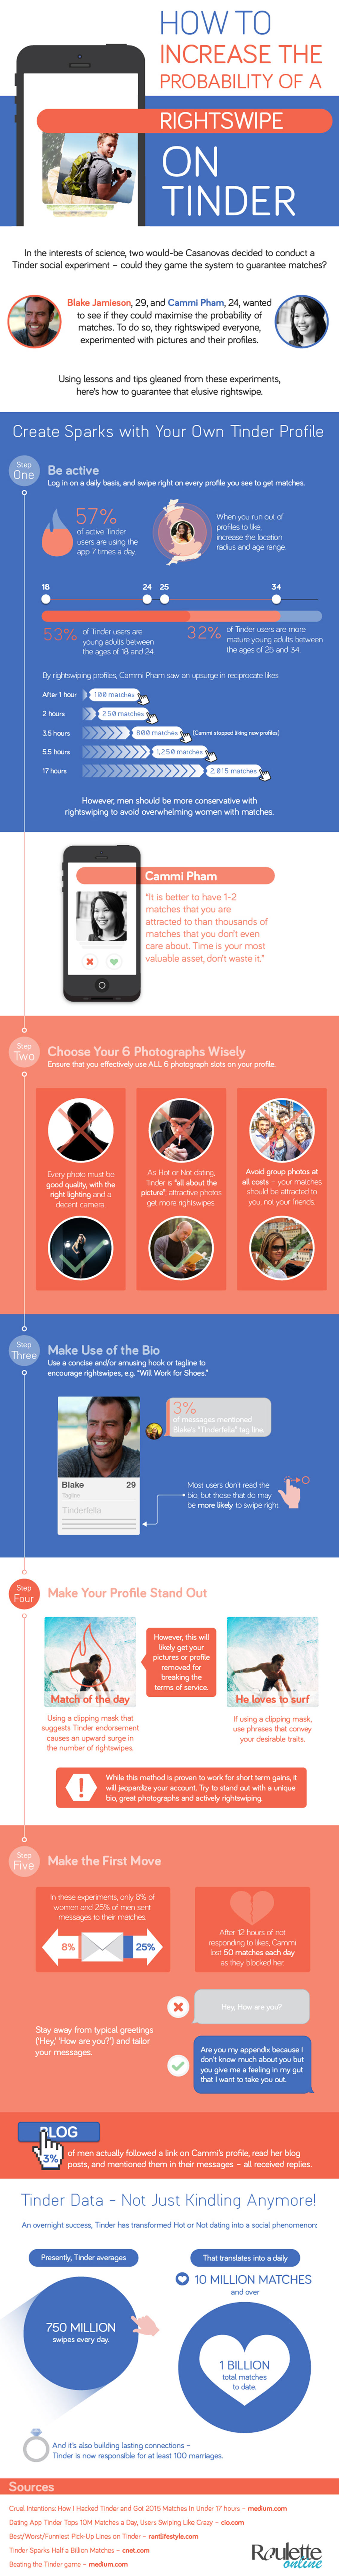 How to Maximise the Probability of Matches on Tinder Infographic